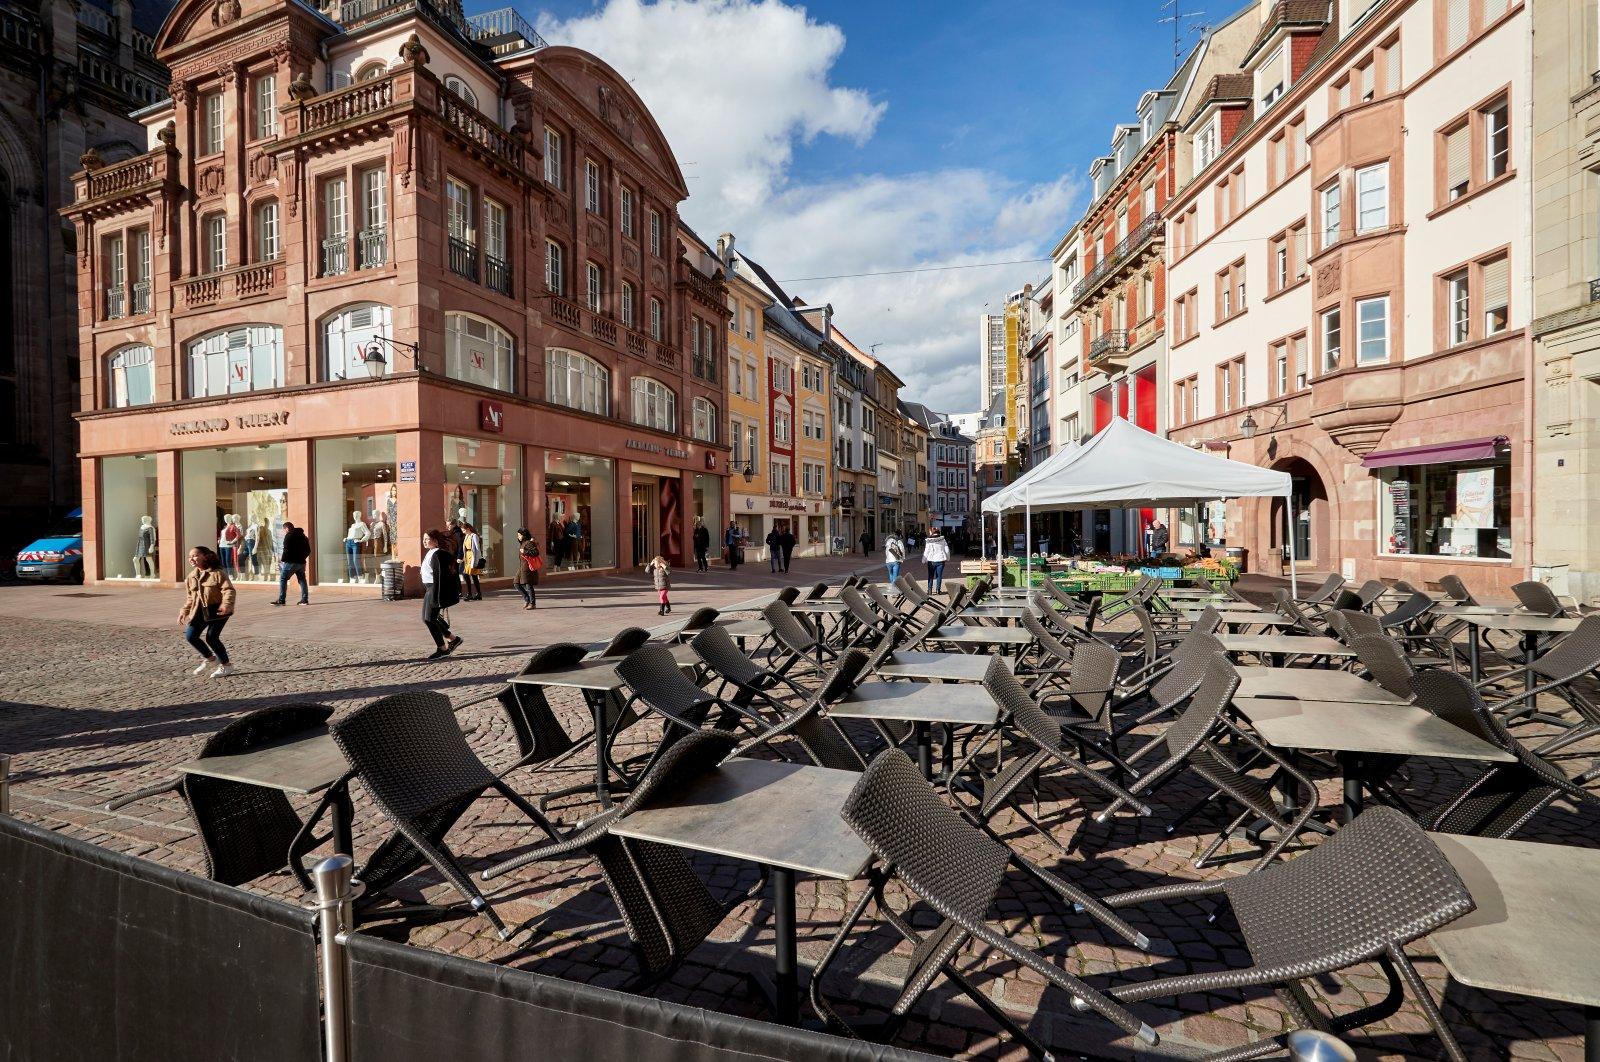 A closed terrace is pictured during the outbreak of the coronavirus disease (COVID-19) in Mulhouse, France March 12, 2020. (Reuters Photo)